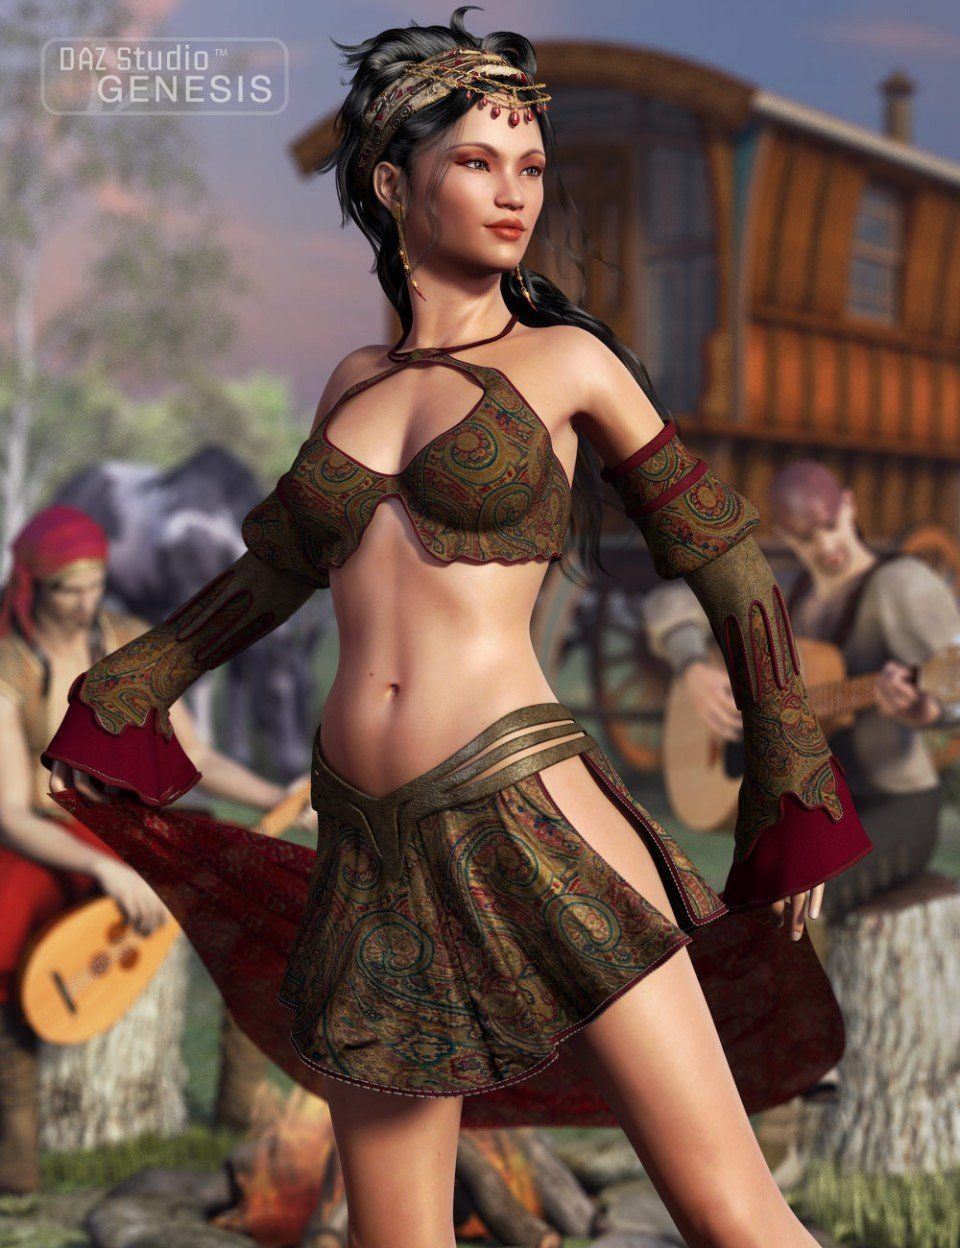 Gypsy Dancer Outfit & Textures_DAZ3D下载站